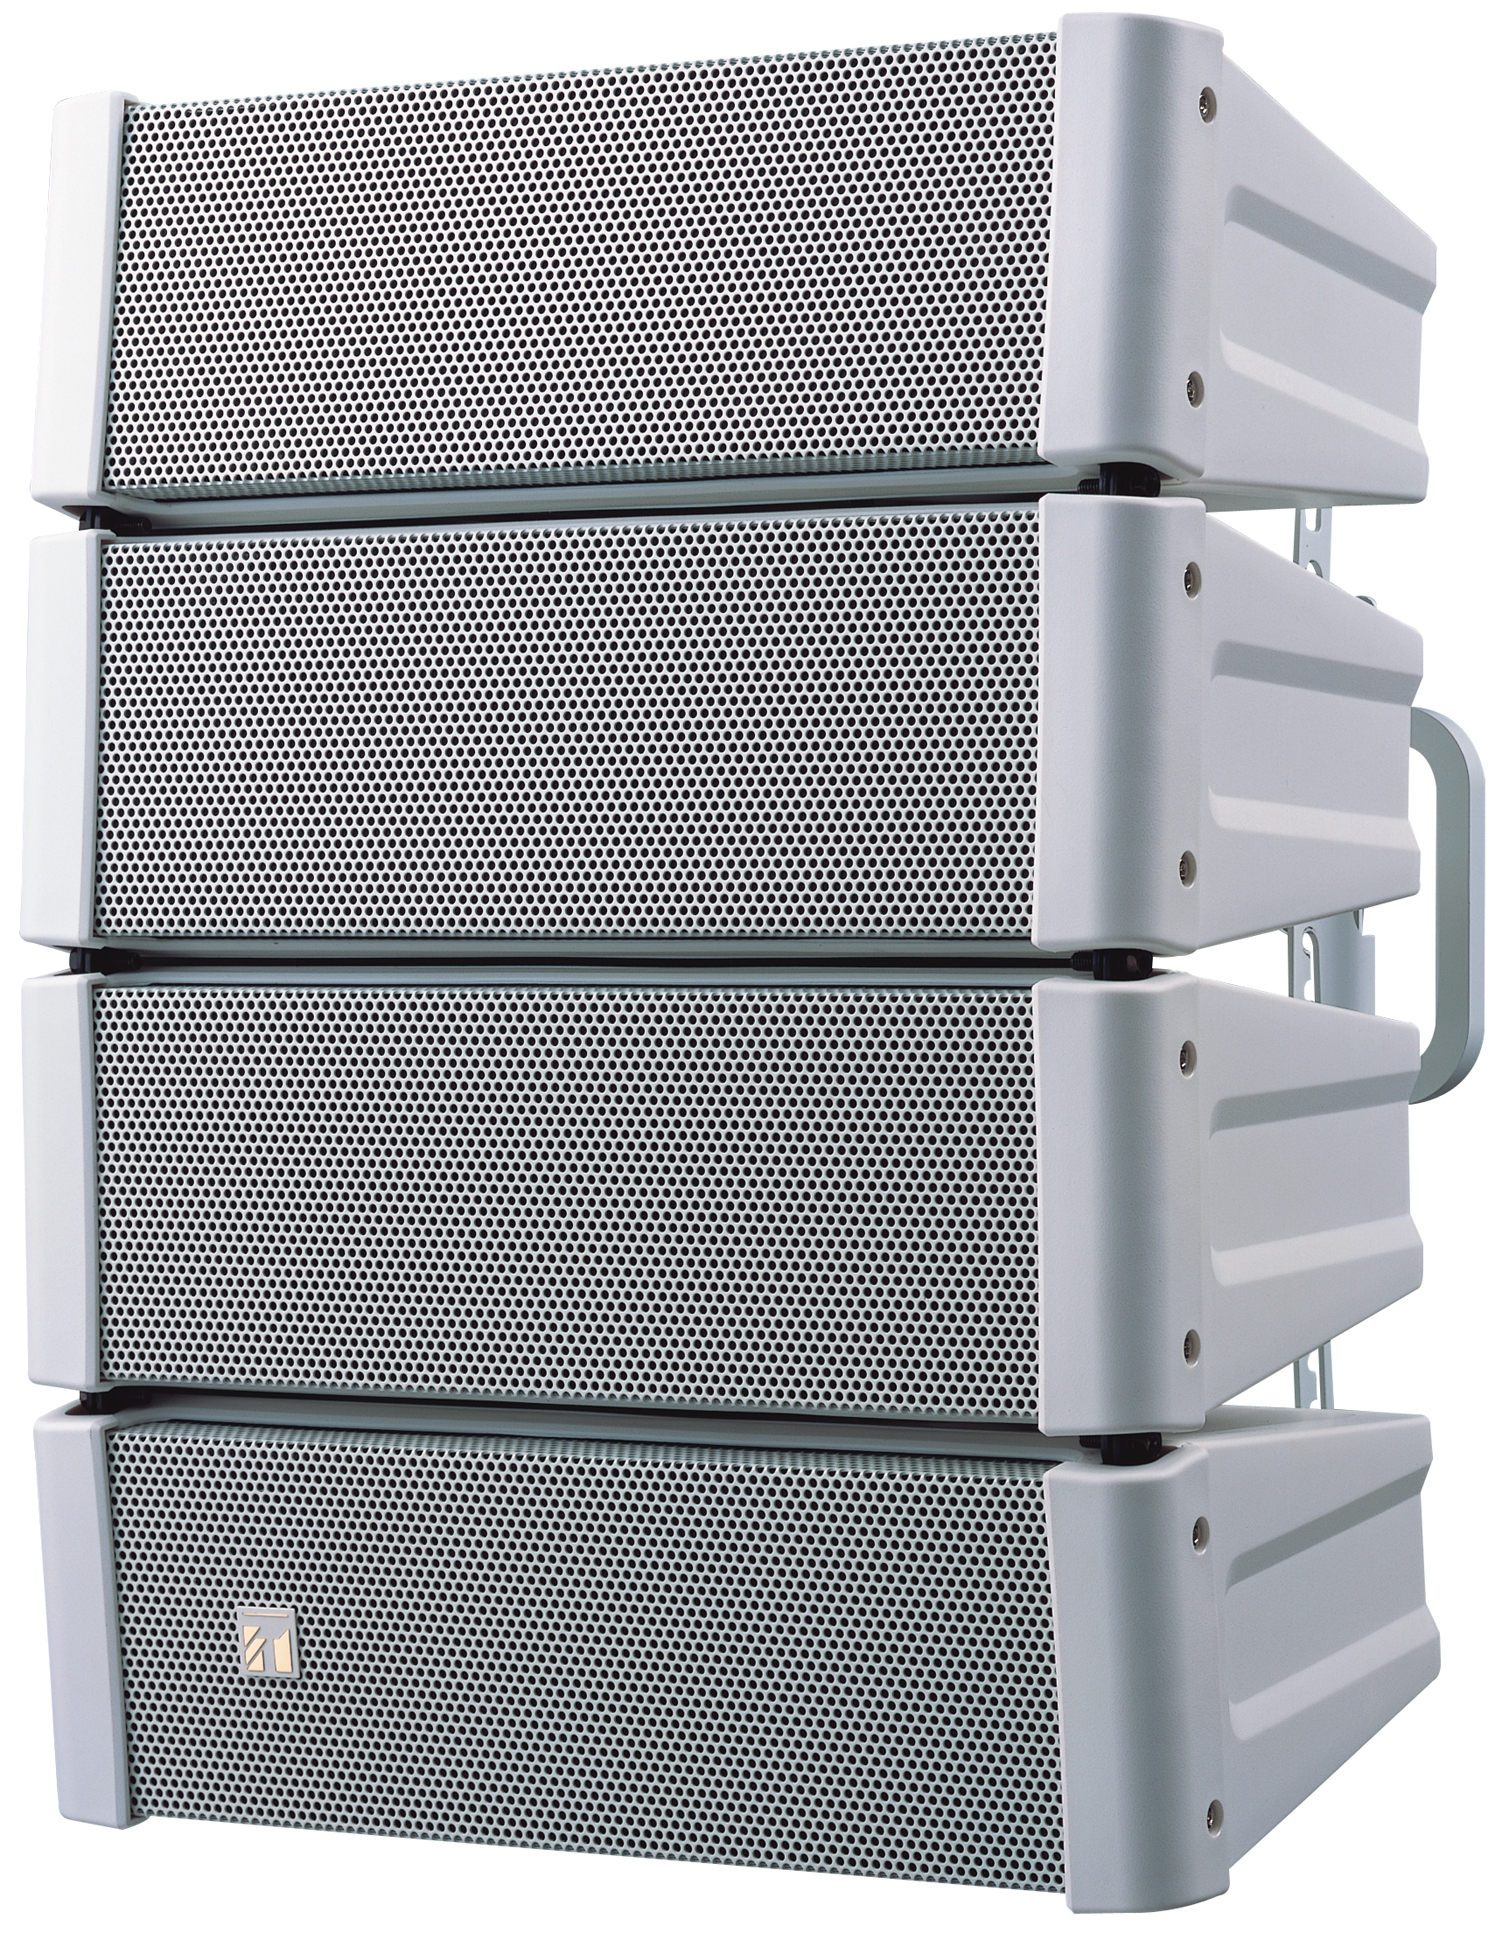 TOA HX-5W-WP Weather Resistant Compact Line Array Speaker System (Black)